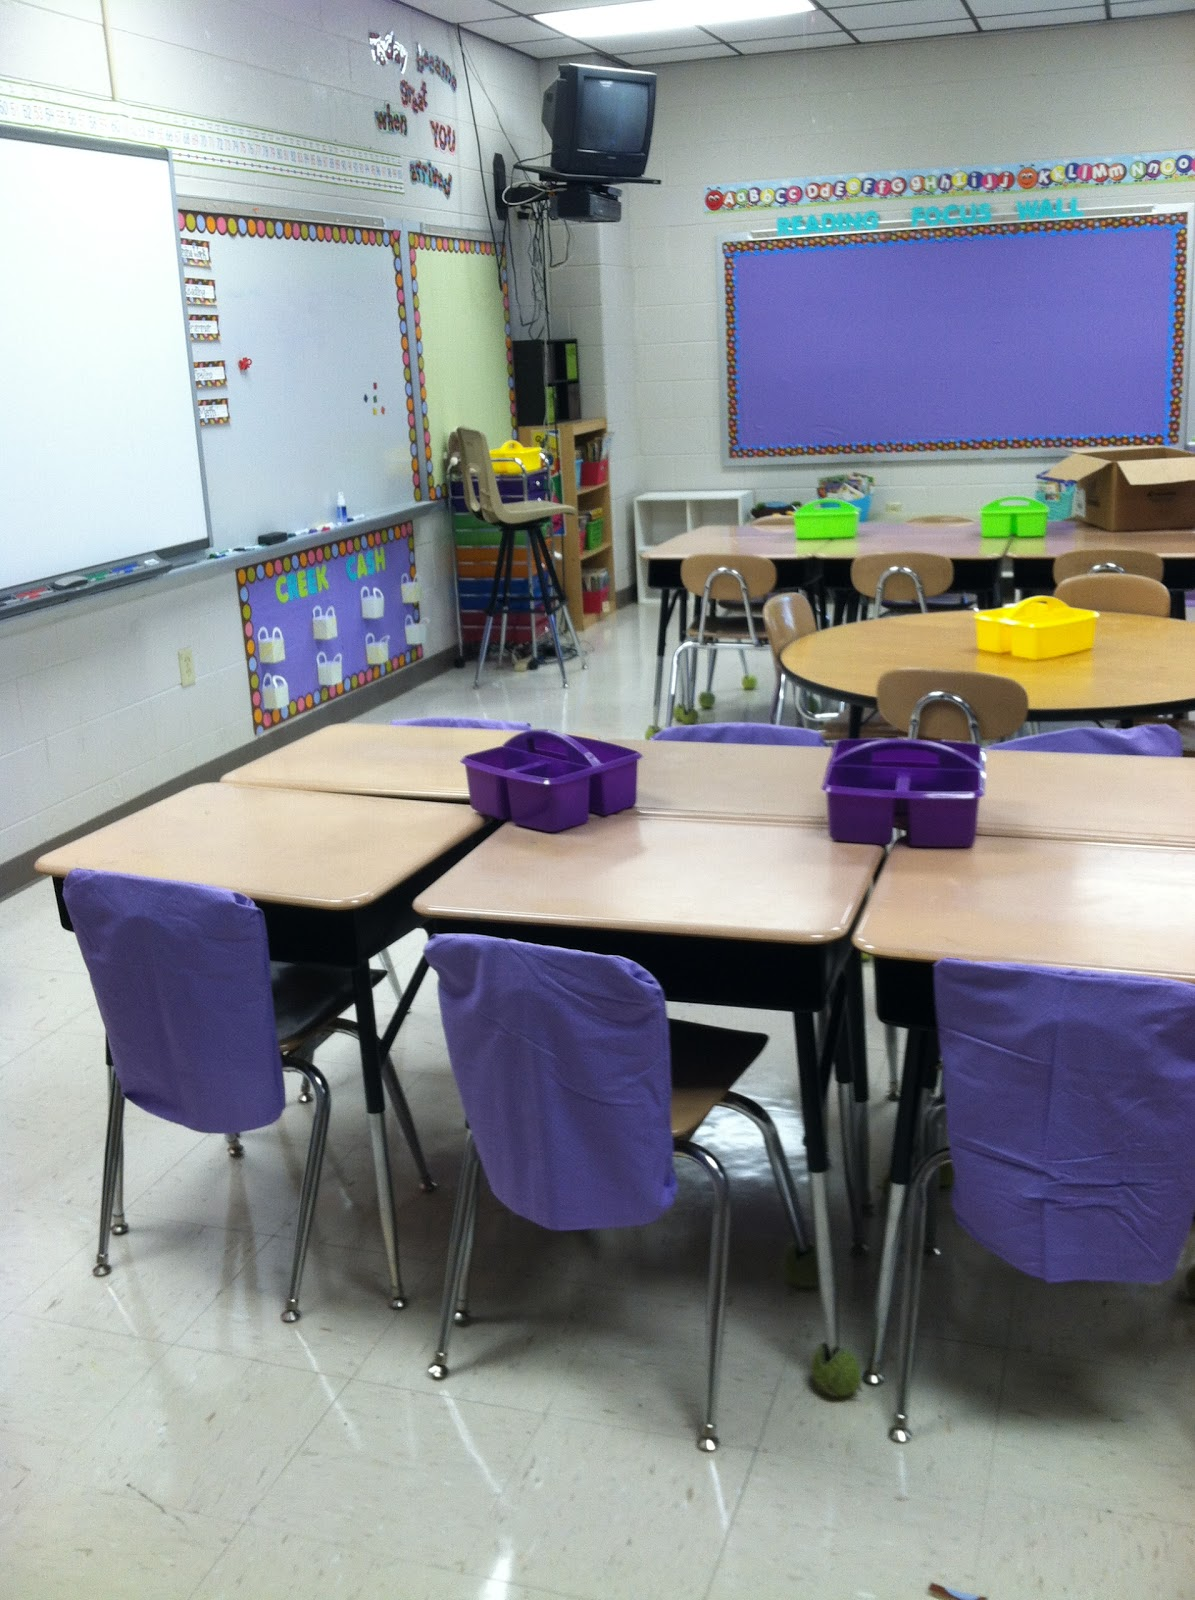 Classroom Organizer Chair Covers Men S Valet Uk Southern Sweetie In Second Decorating And Whole Brain I Made These Seat For My Chairs Them With The Left Over Fabric From Boards Color Coordinated Table Top Organizers